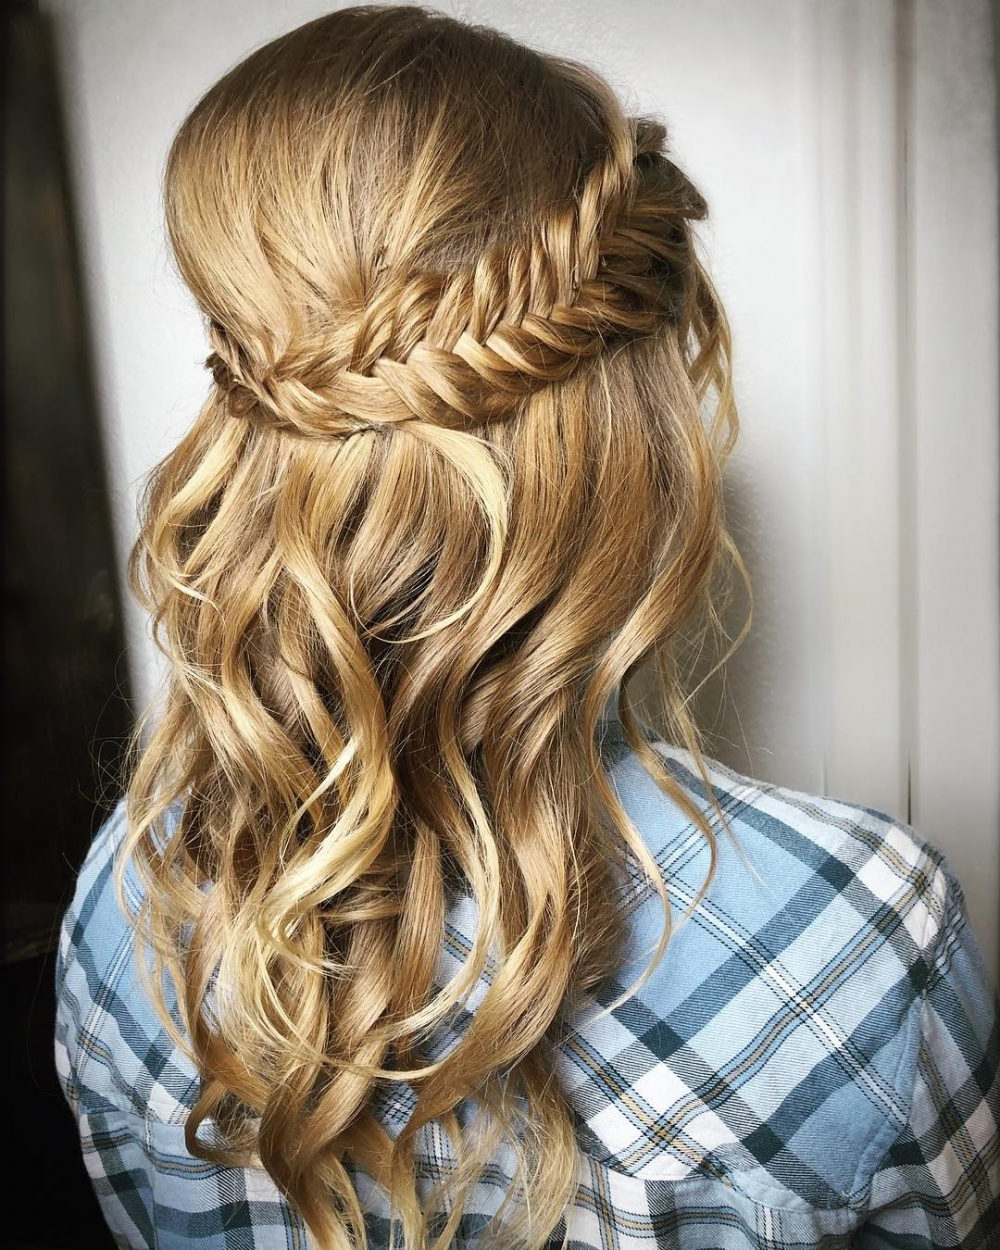 27 Prettiest Half Up Half Down Prom Hairstyles For 2019 With Regard To Most Popular Half Up Curly Hairstyles With Highlights (Gallery 6 of 20)